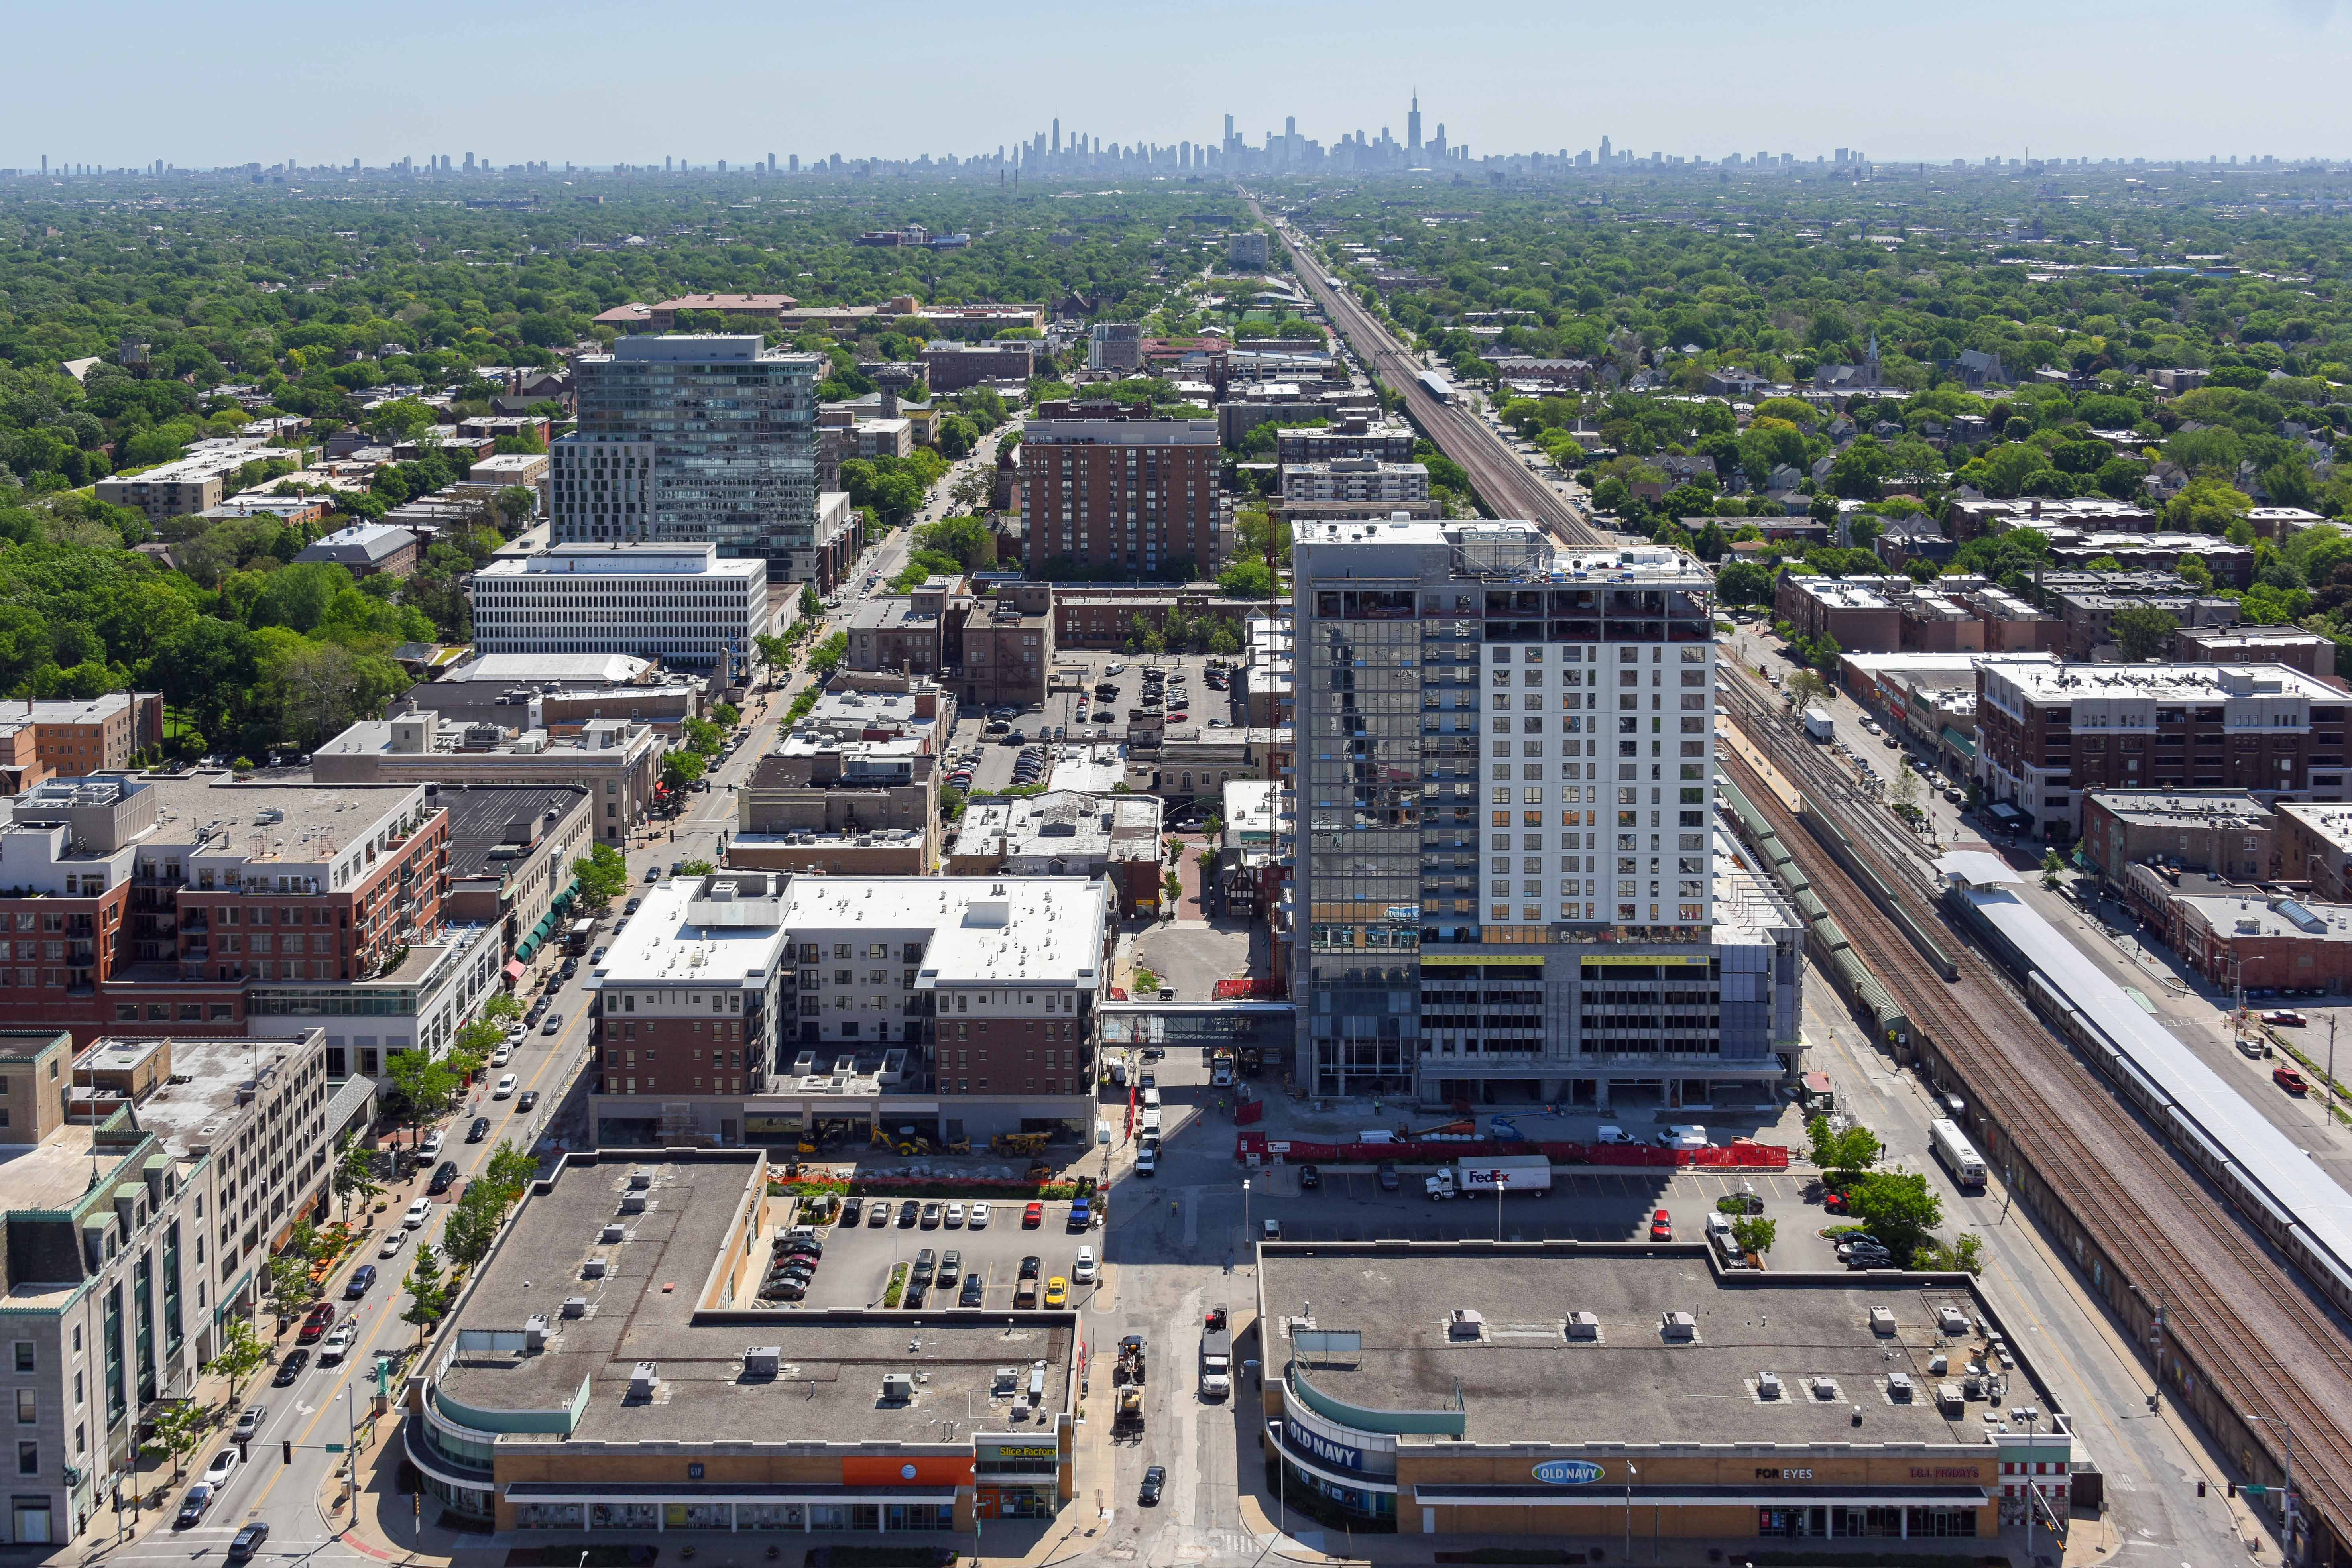 Rogers park apartment guide – yochicago.